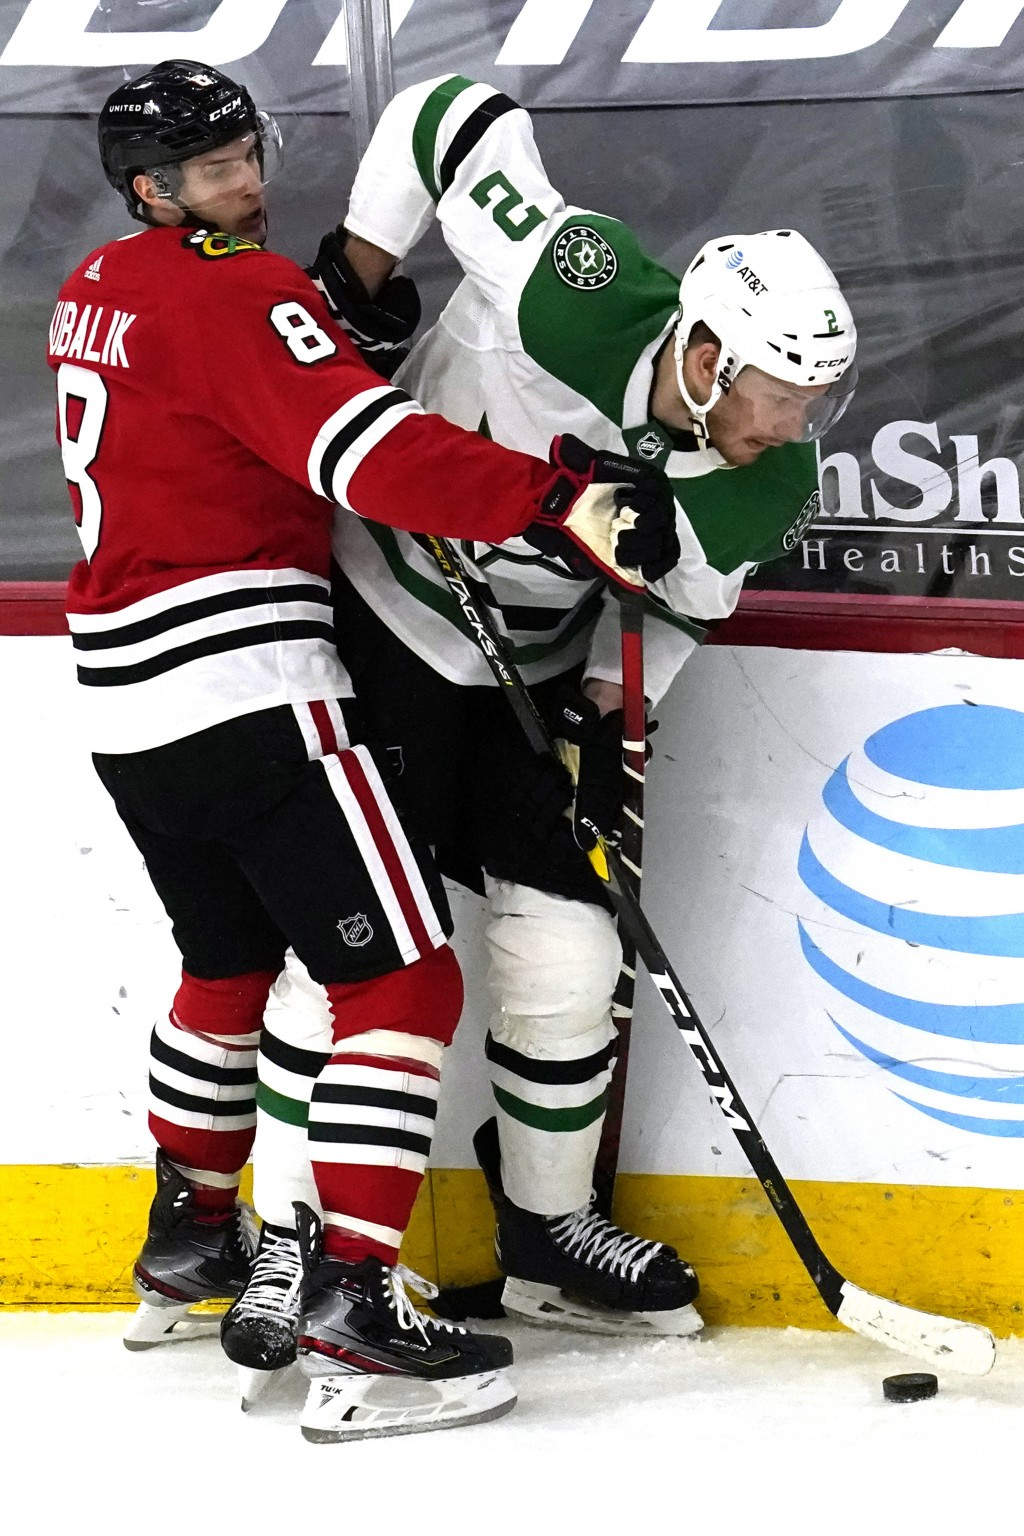 Dallas Stars defenseman Jamie Oleksiak, right, works for the puck against Chicago Blackhawks left wing Dominik Kubalik during the first period of an N...